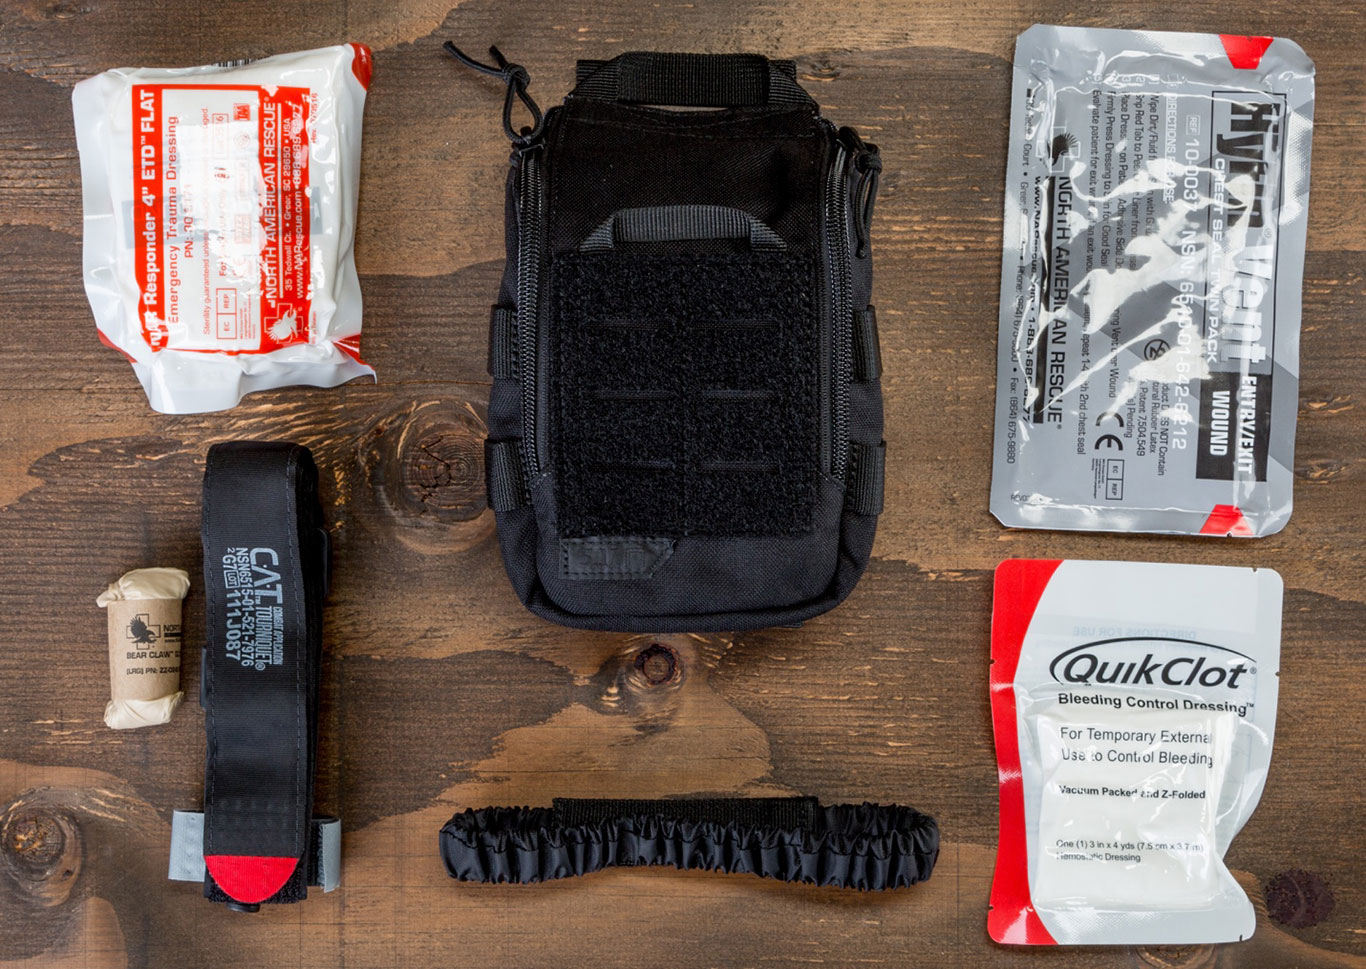 Every shooter should carry a medical kit that can treat a gunshot wound until medics can arrive.